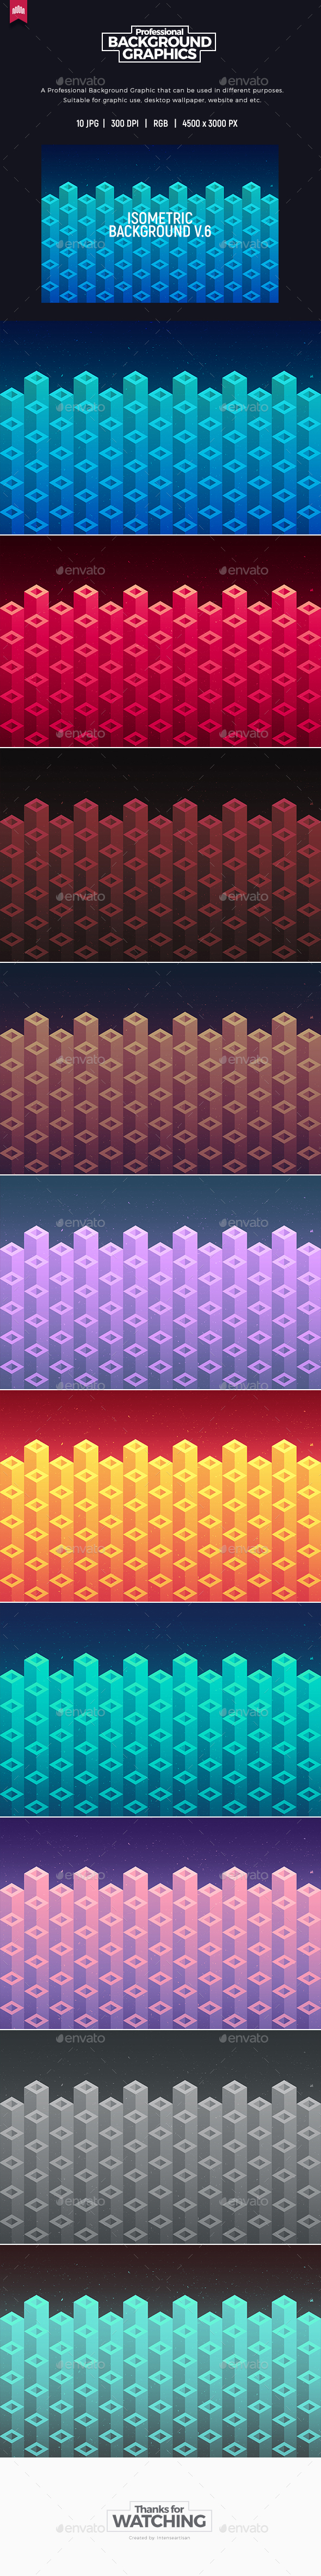 GraphicRiver Isometric Background V.6 20385697